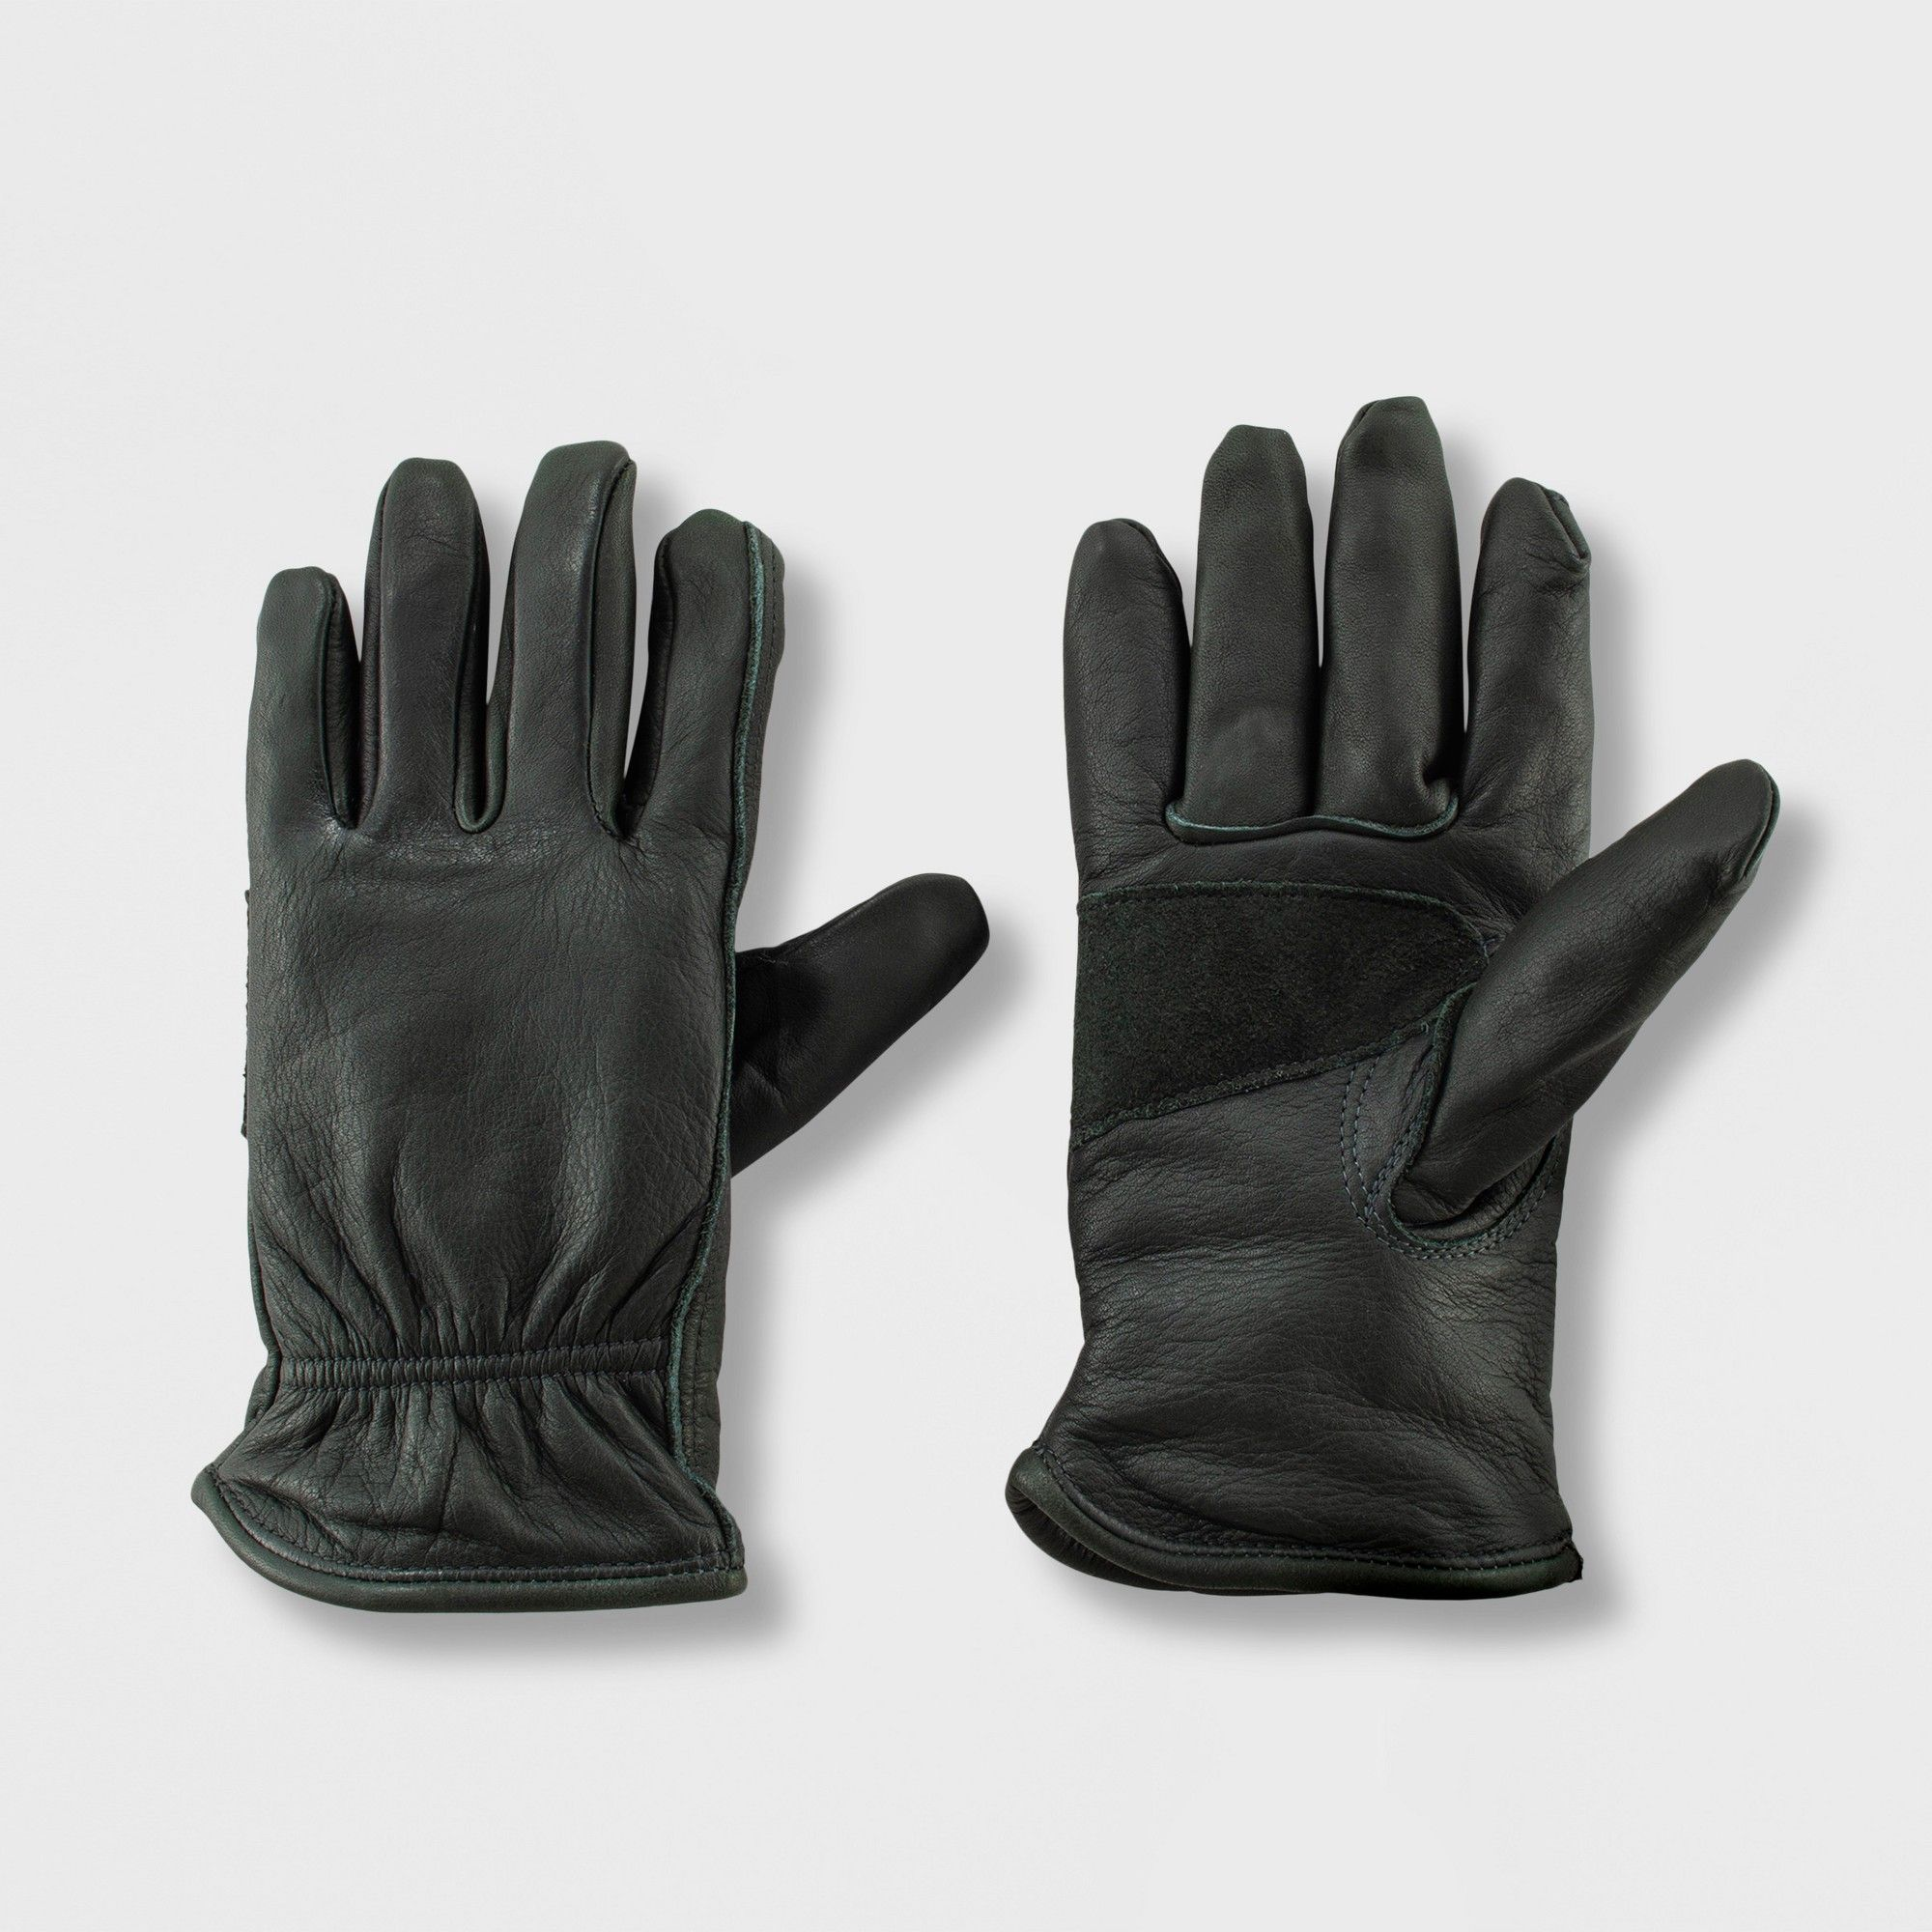 Mens touchscreen Geniune Leather Gloves Winter Warm Driving Cashmere Fleece Lining Gift Packing